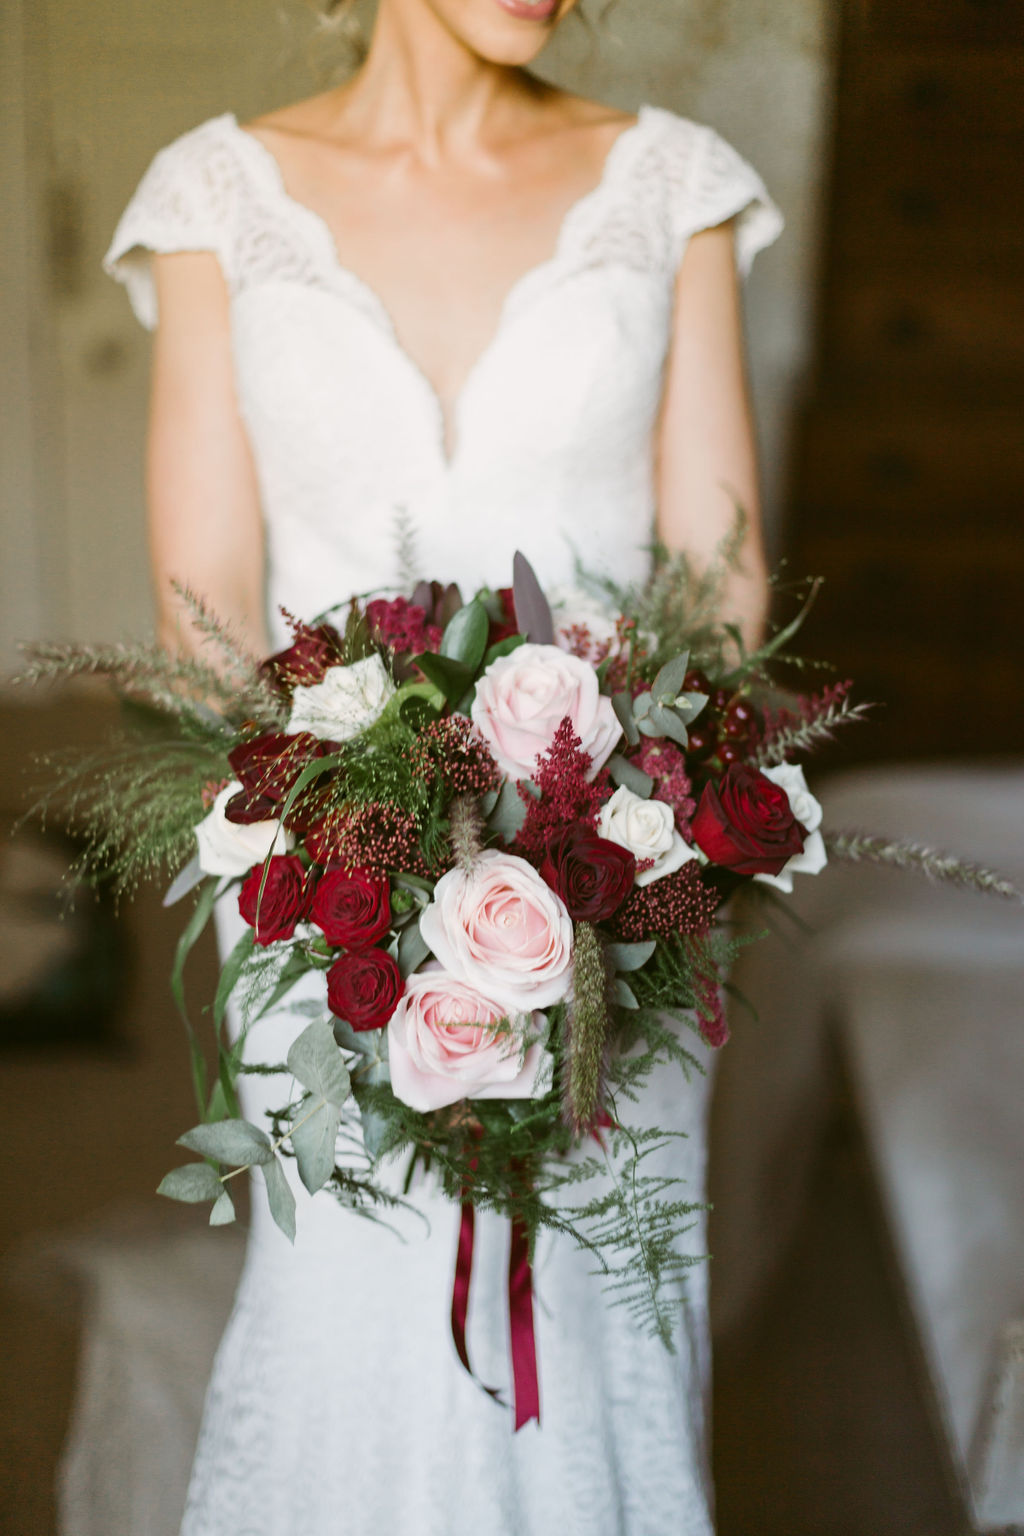 Flower Vogue Aberdeen | Elsick House Wedding | Burgundy red and pink roses wedding bouquet with eucalyptus | Ceranna Photography